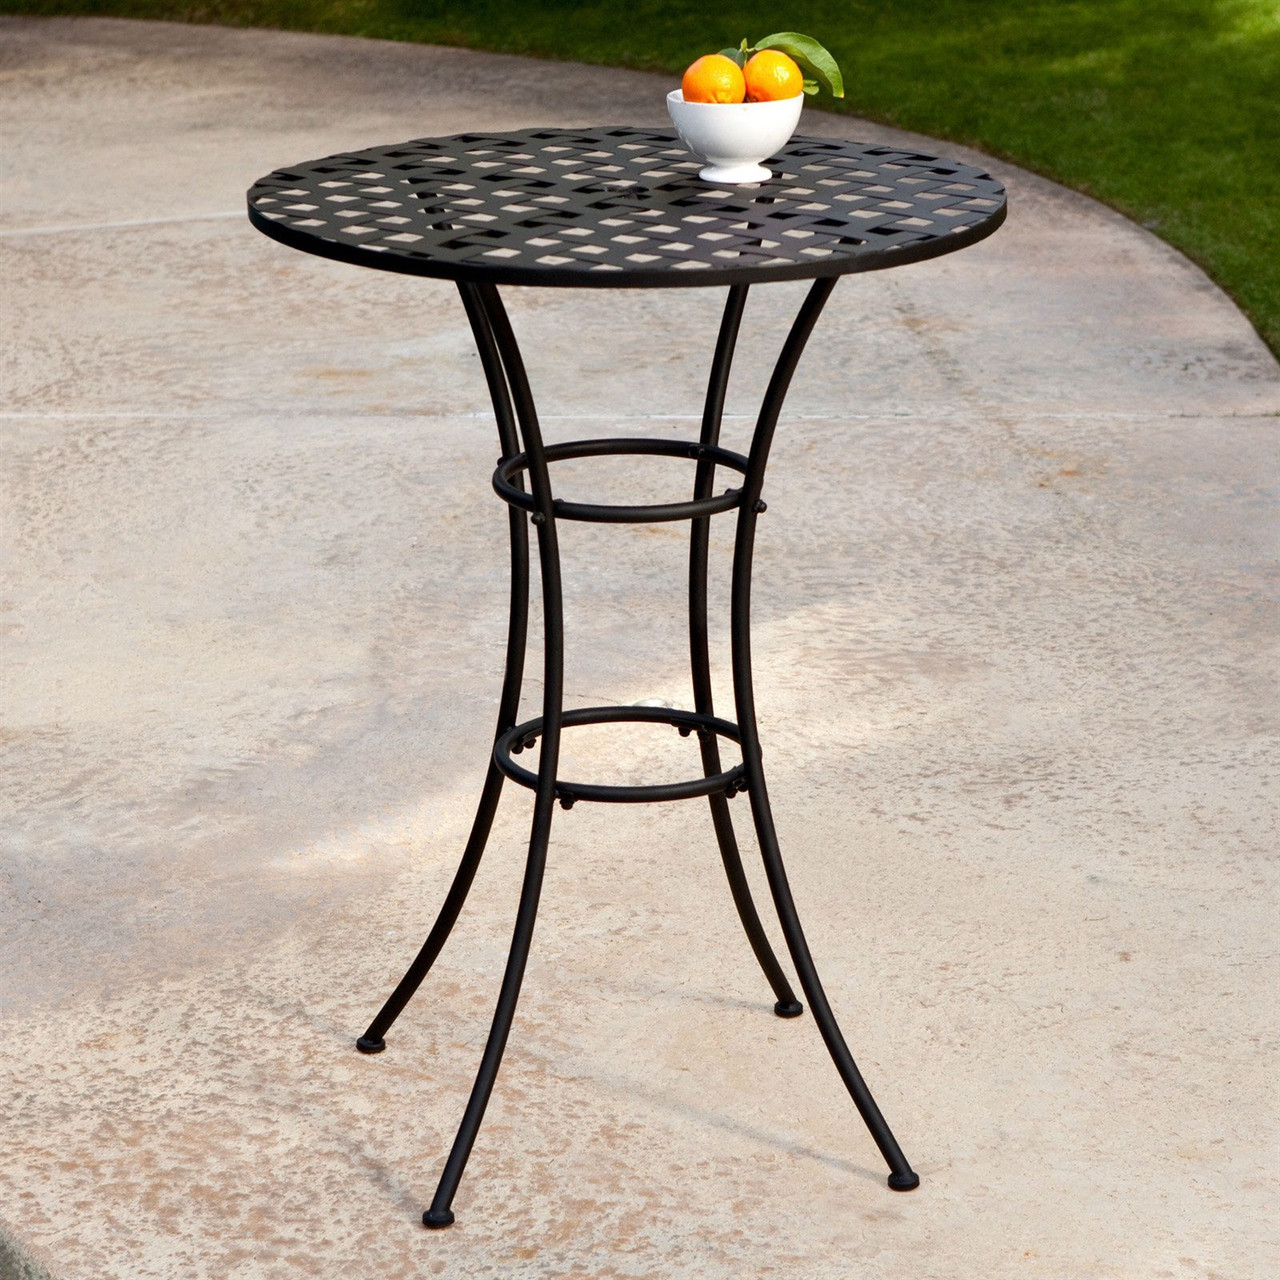 Black Wrought Iron Outdoor Bistro Patio Table Round Tabletop